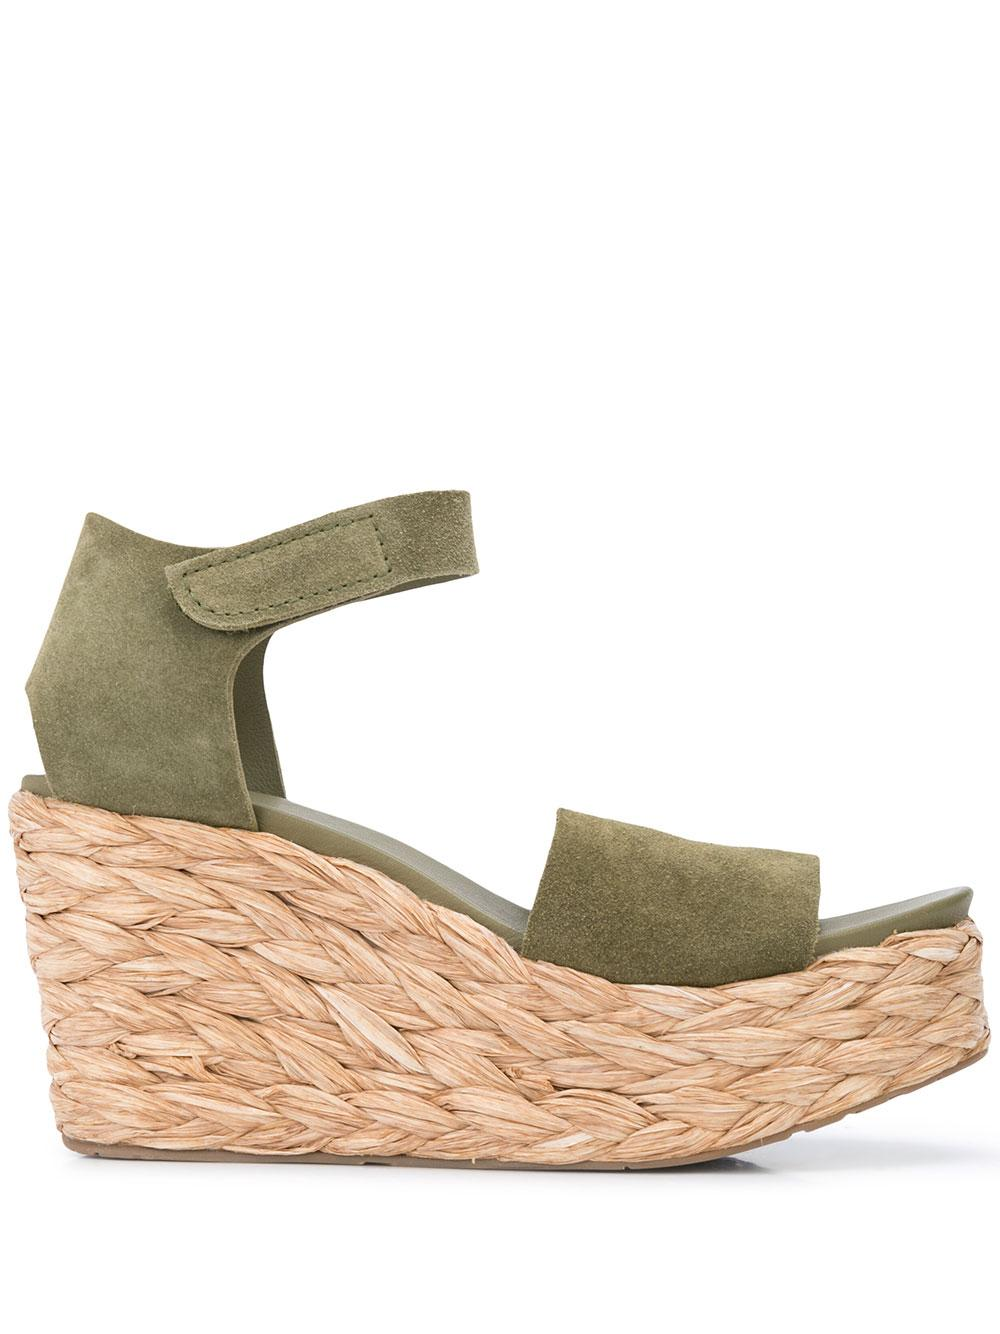 Wedge Espadrille Platform Sandal With Velcro